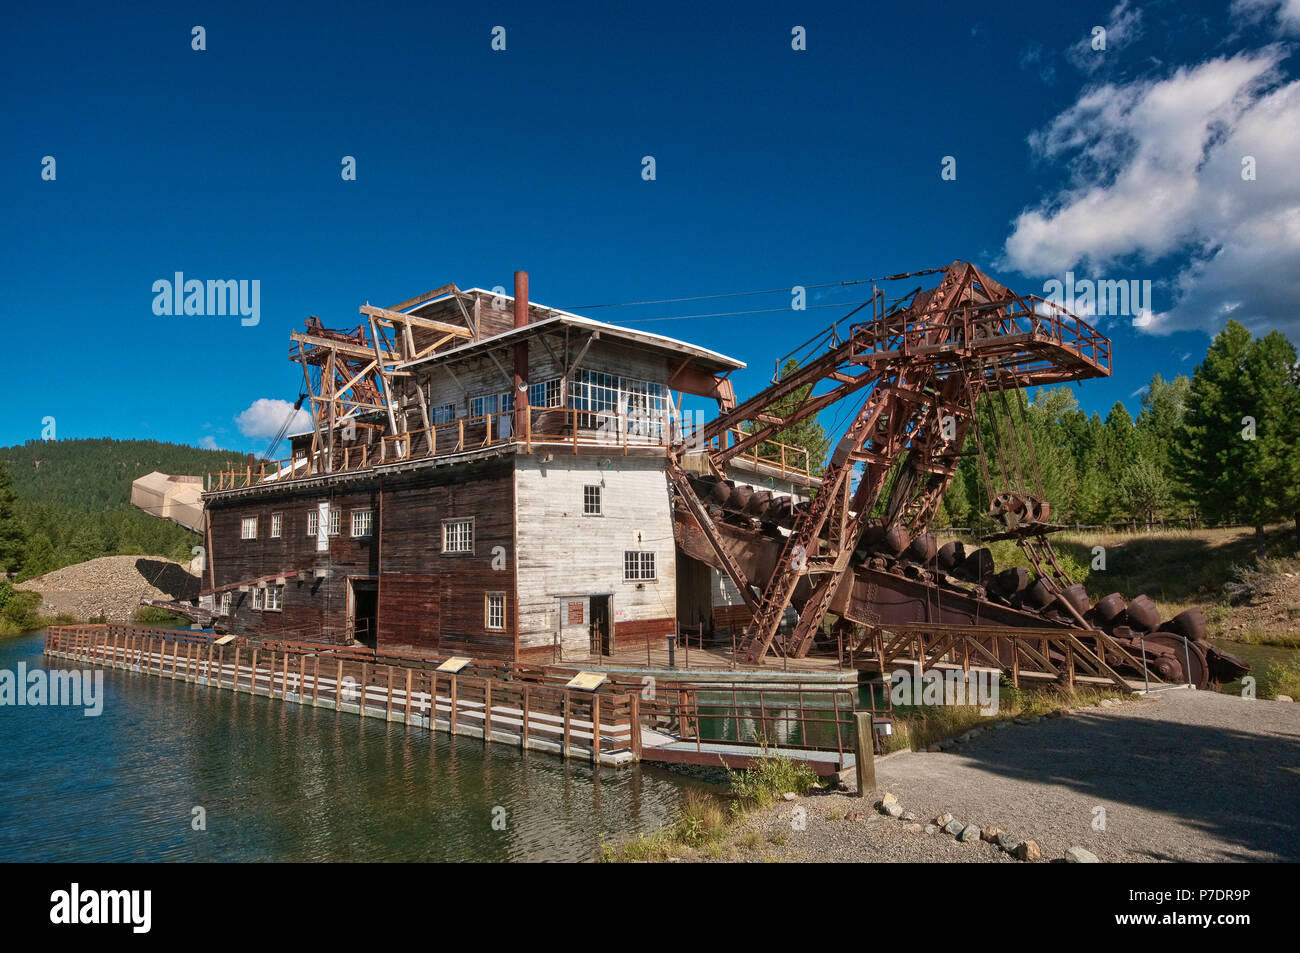 Old gold mining dredge at Sumpter in Blue Mountains, Oregon, USA - Stock Image